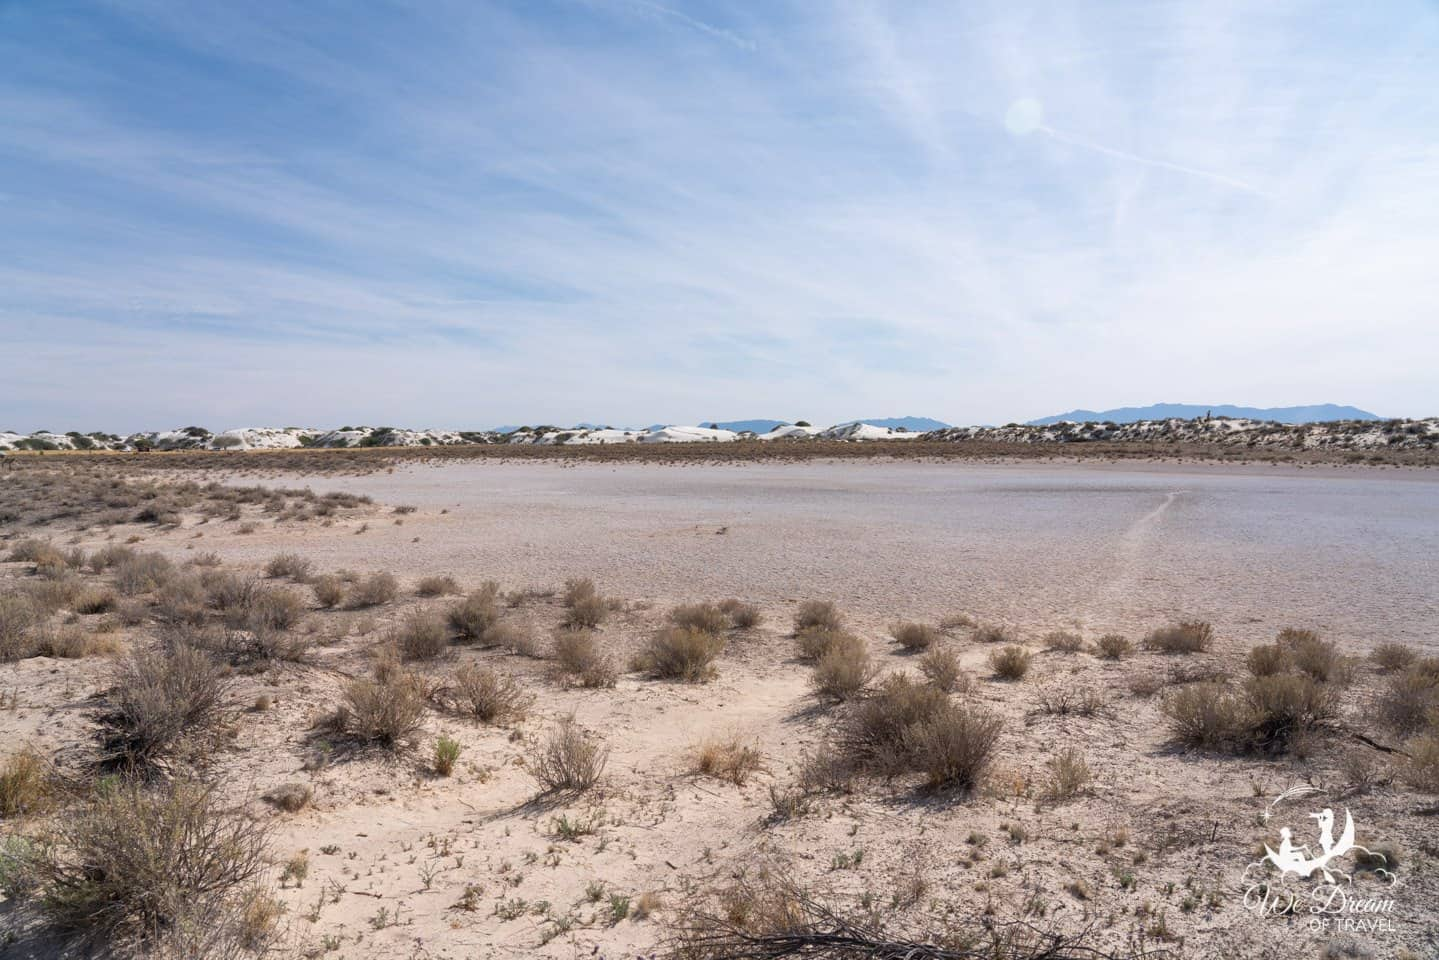 Discover more about how this intriguing landscape has formed on the Playa Trail.